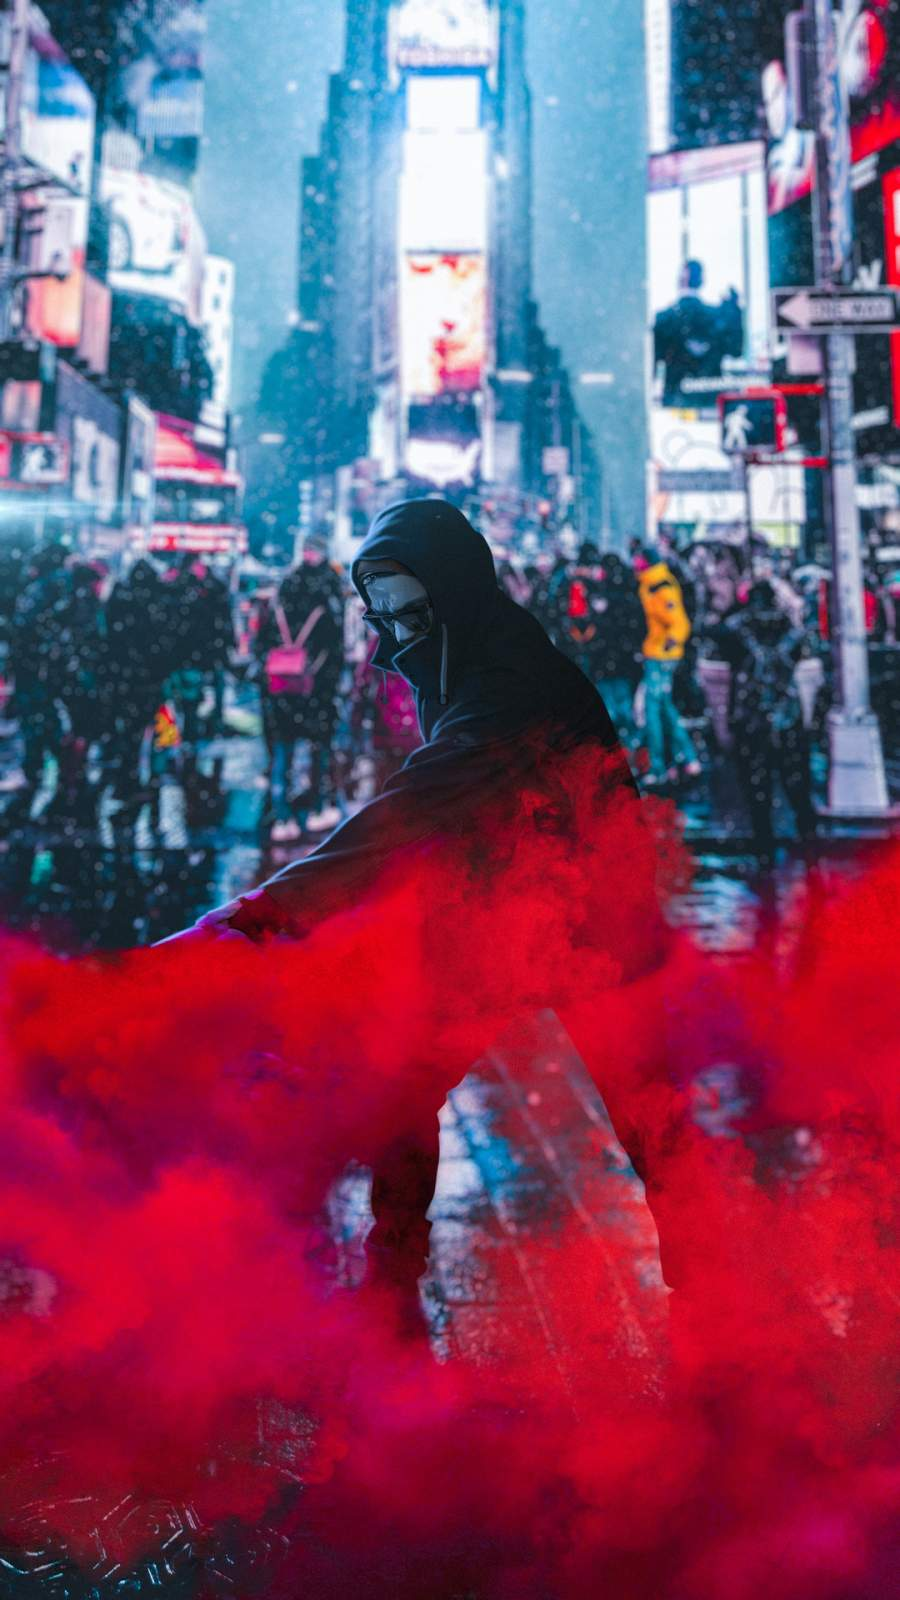 The Protester Red Smoke iPhone Wallpaper